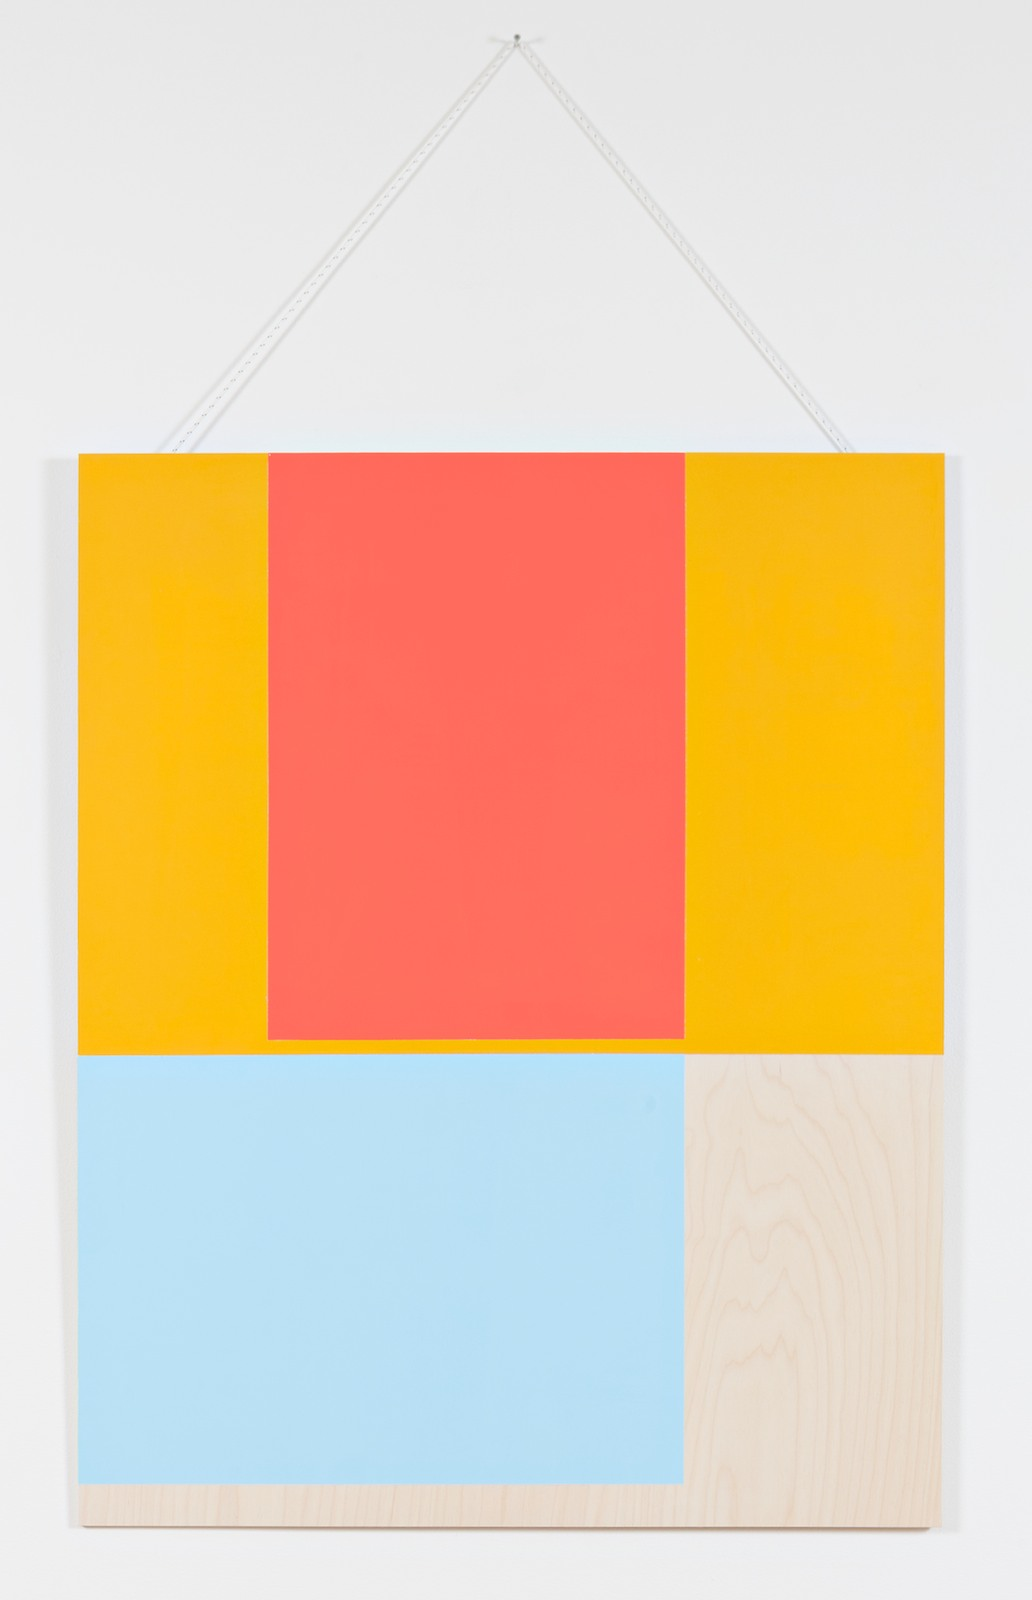 Collected colors #2, 2015, acrylic and wax on birch plywood, nylon thread, 125 x 100 x 0,9 cm